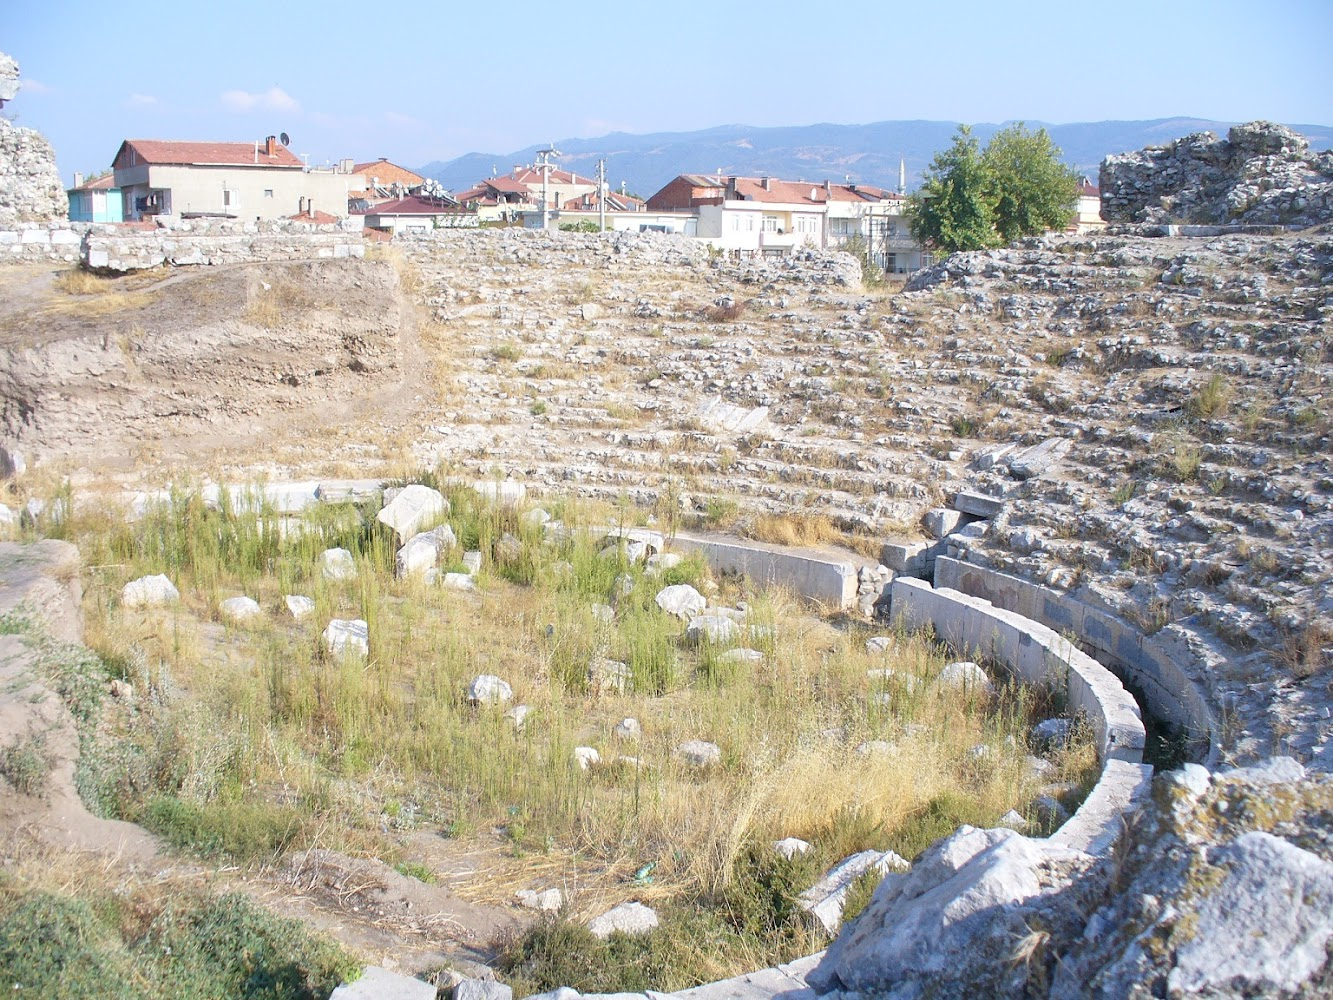 Near East: Restoration works at the Roman theatre in ancient Nikaia underway